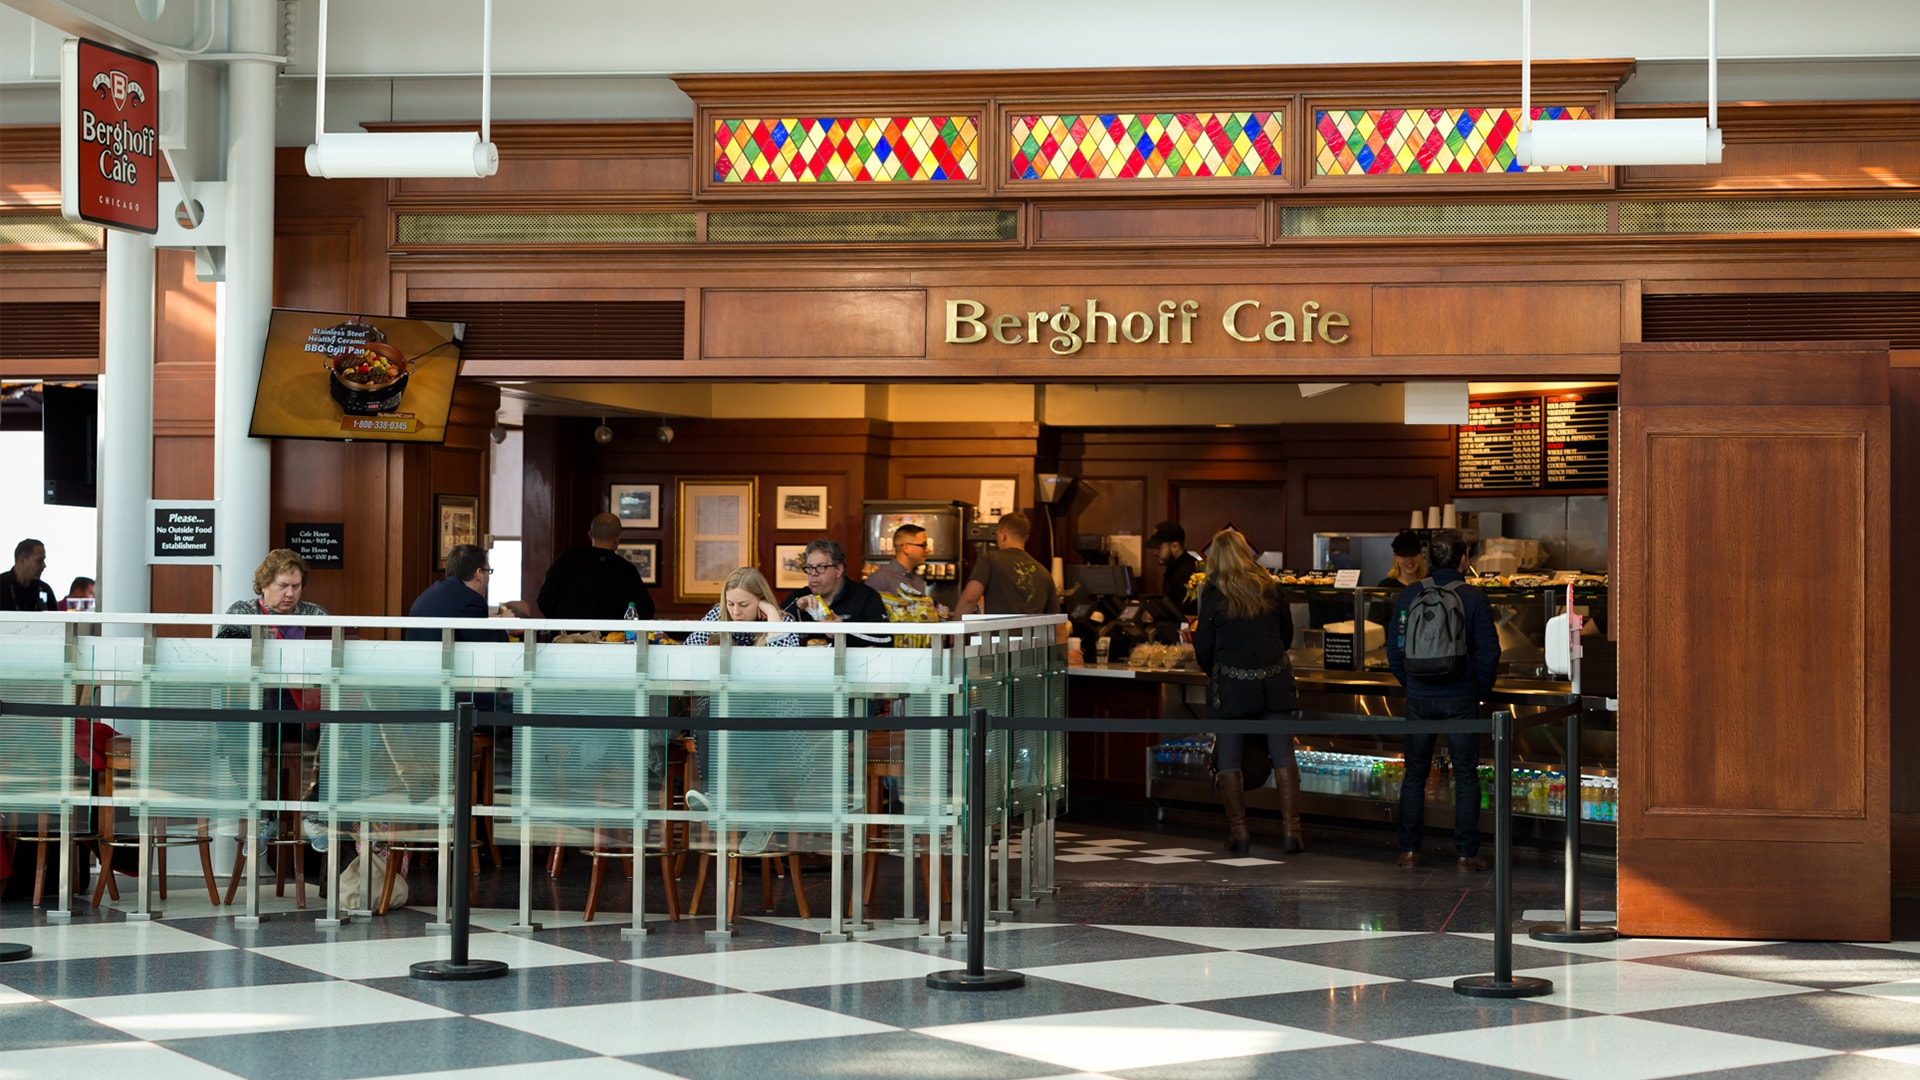 The Berghoff Cafe German Restaurant O Hare Chicago Airport